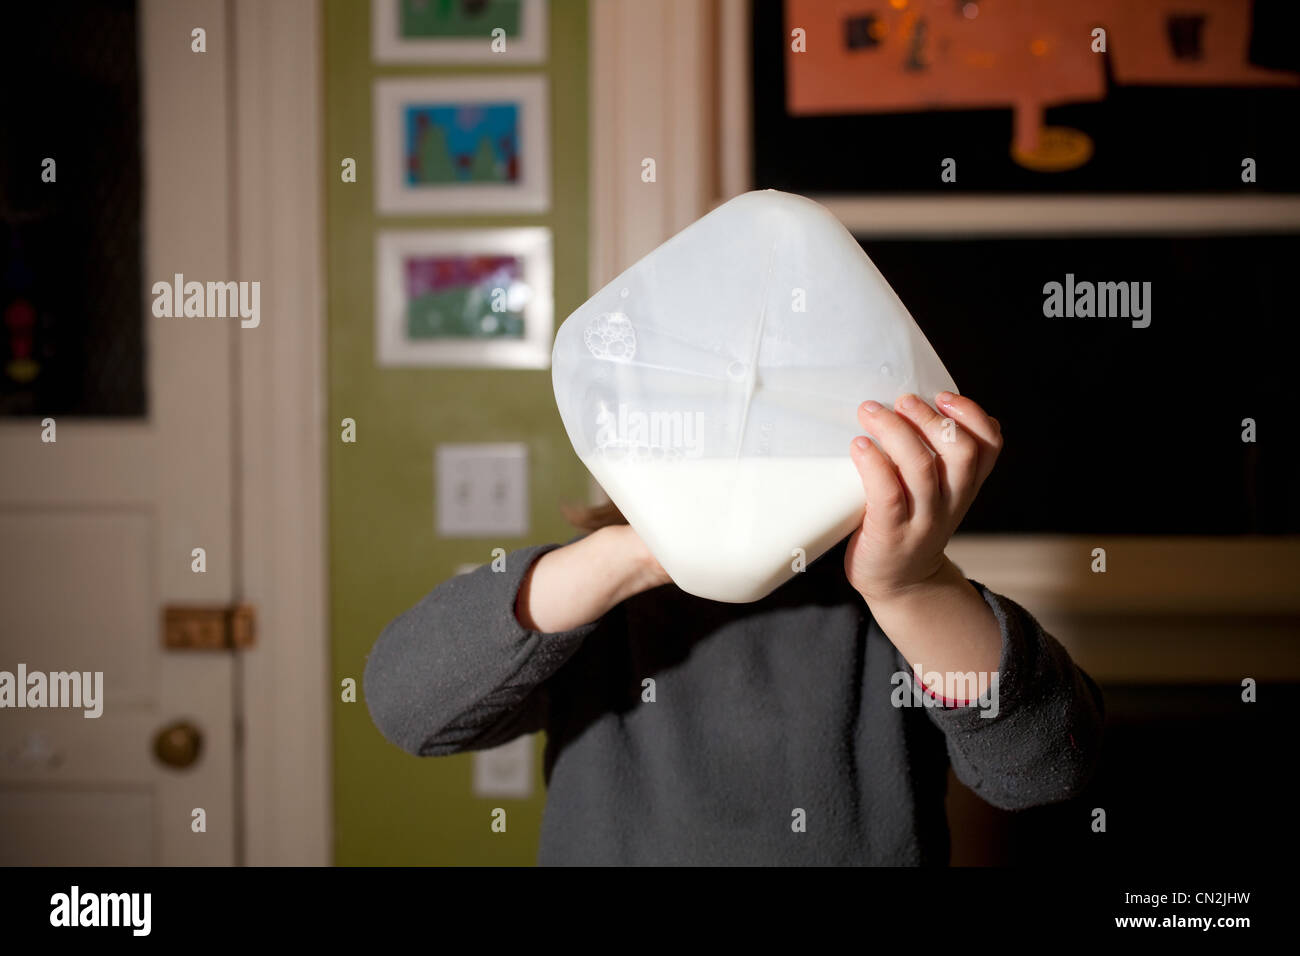 Boy drinking milk from container - Stock Image